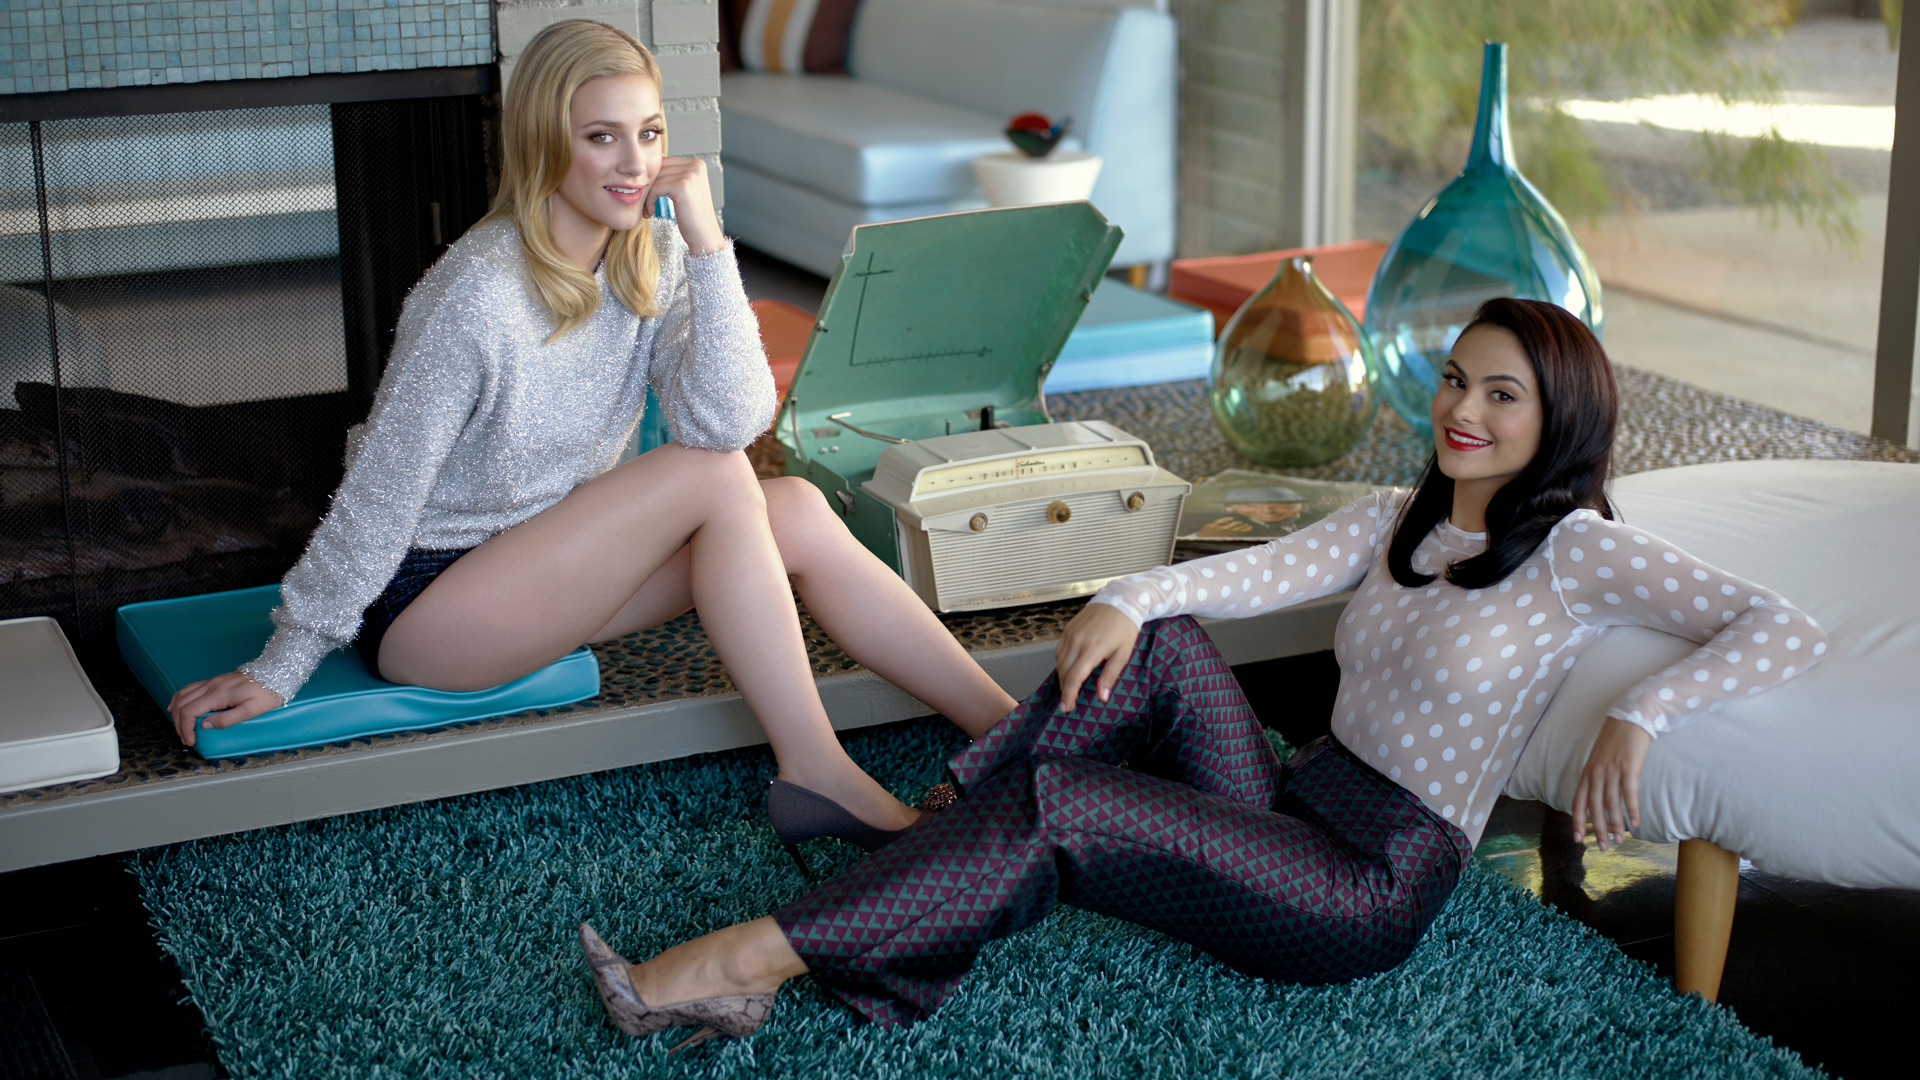 Betty and Veronica of Riverdale look insanely gorgeous in this 1950s-inspired photo shoot.